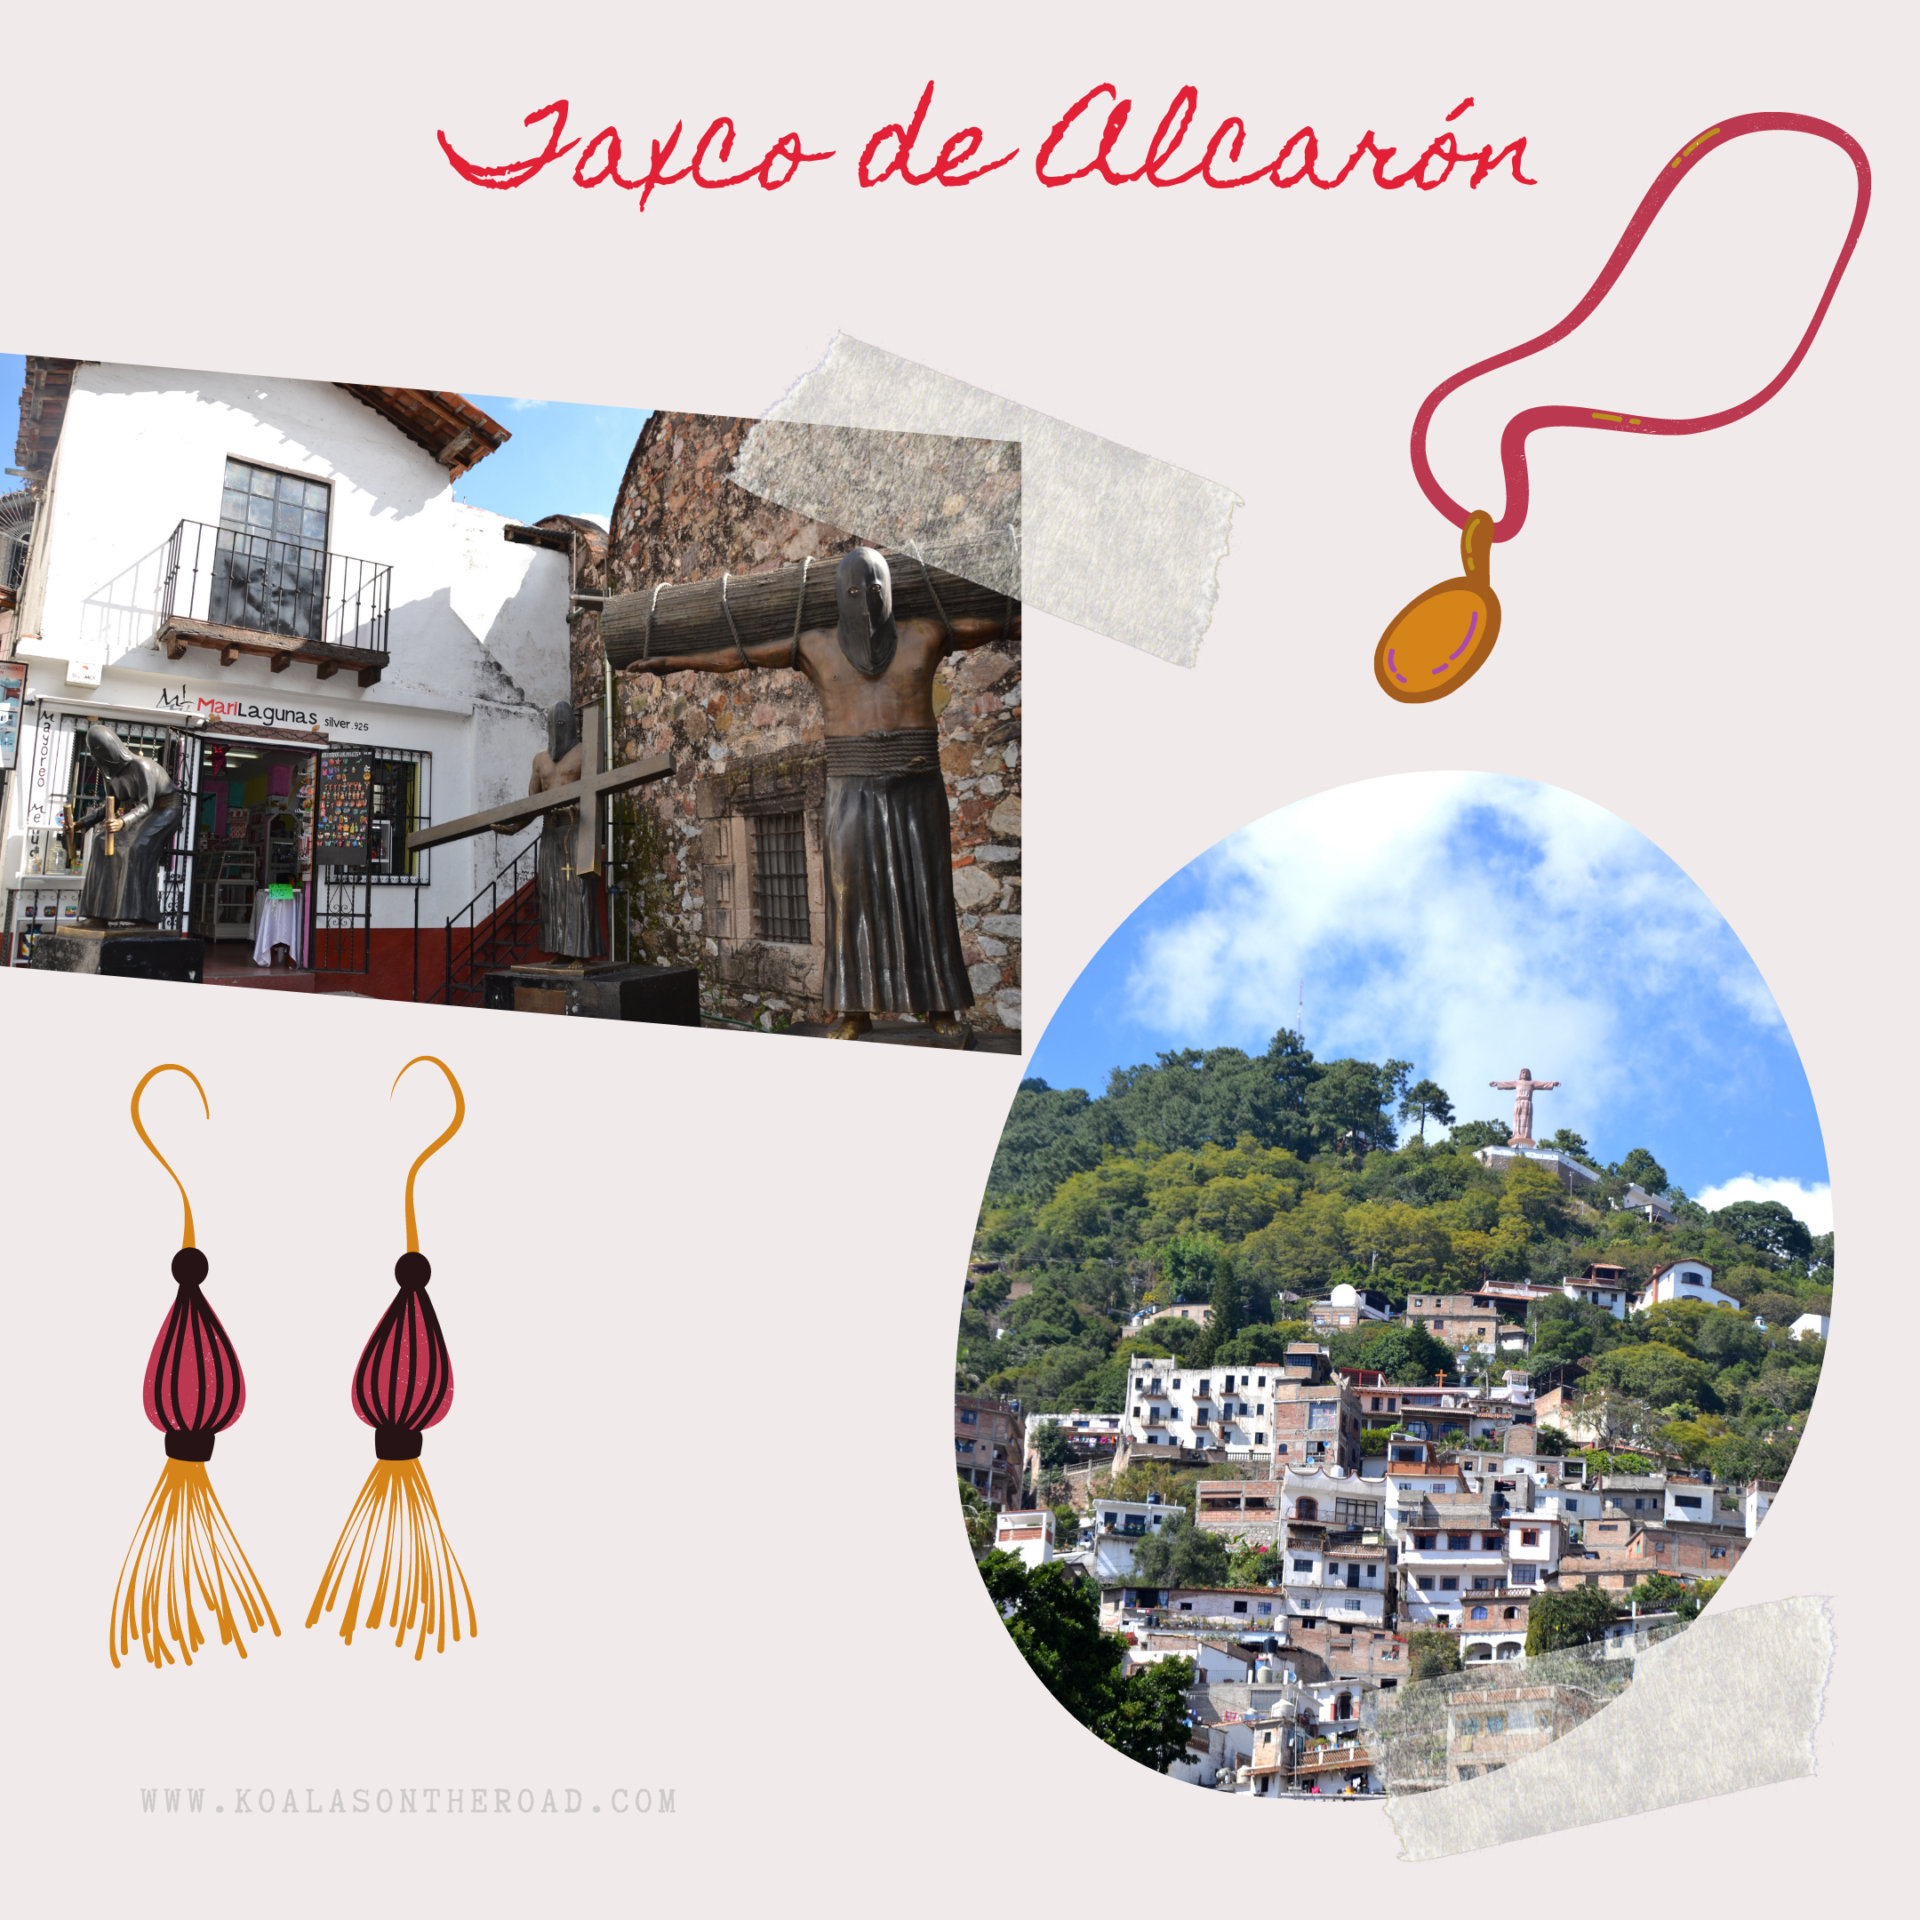 Discovering Mexico - what to visit in Puebla, Morelos and Guerrero states - koalas on the road - Taxco